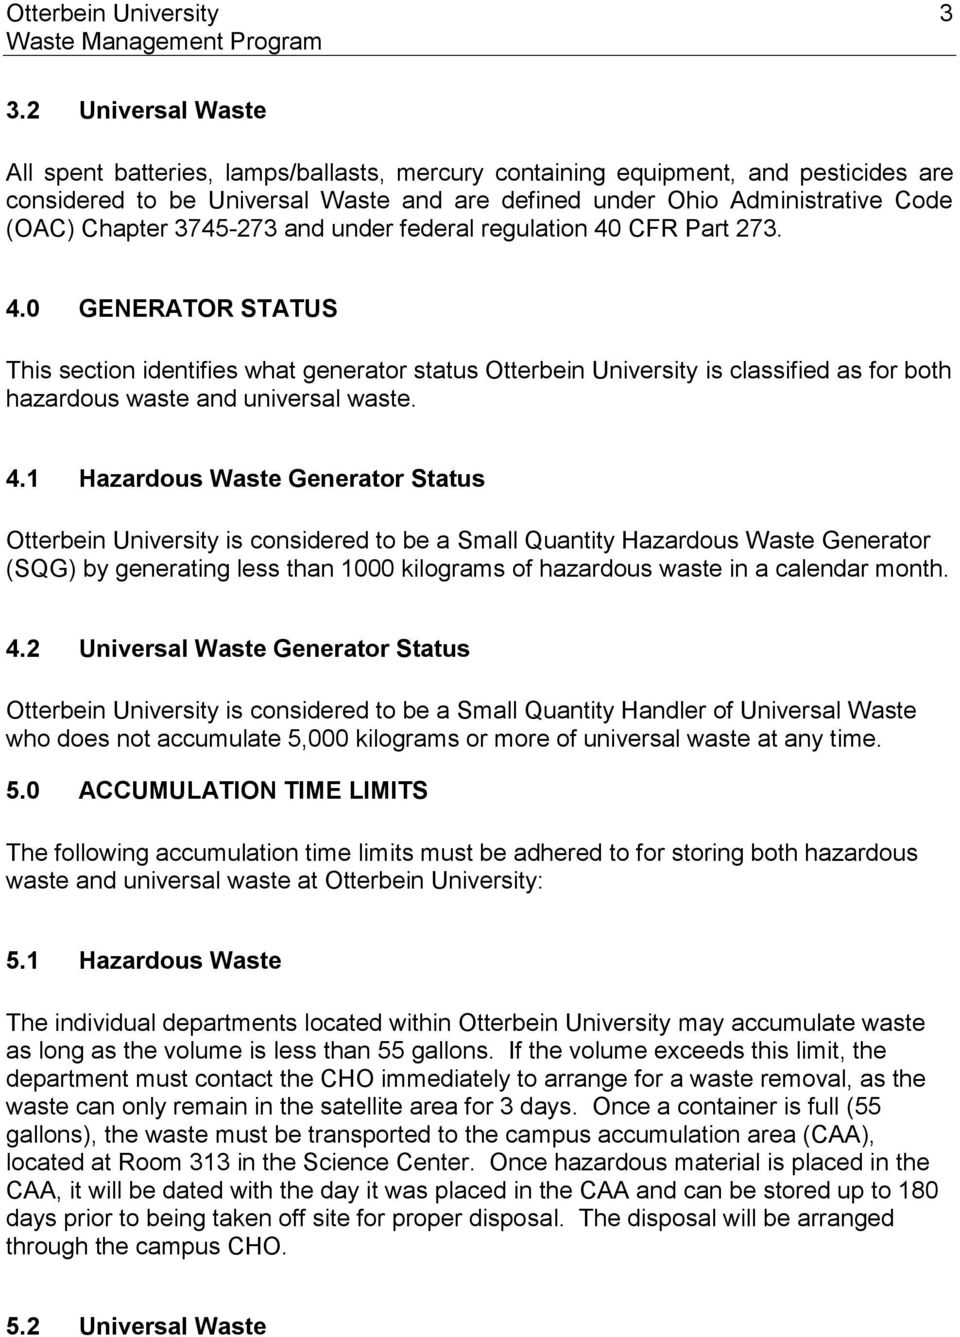 3745-273 and under federal regulation 40 CFR Part 273. 4.0 GENERATOR STATUS This section identifies what generator status Otterbein University is classified as for both hazardous waste and universal waste.